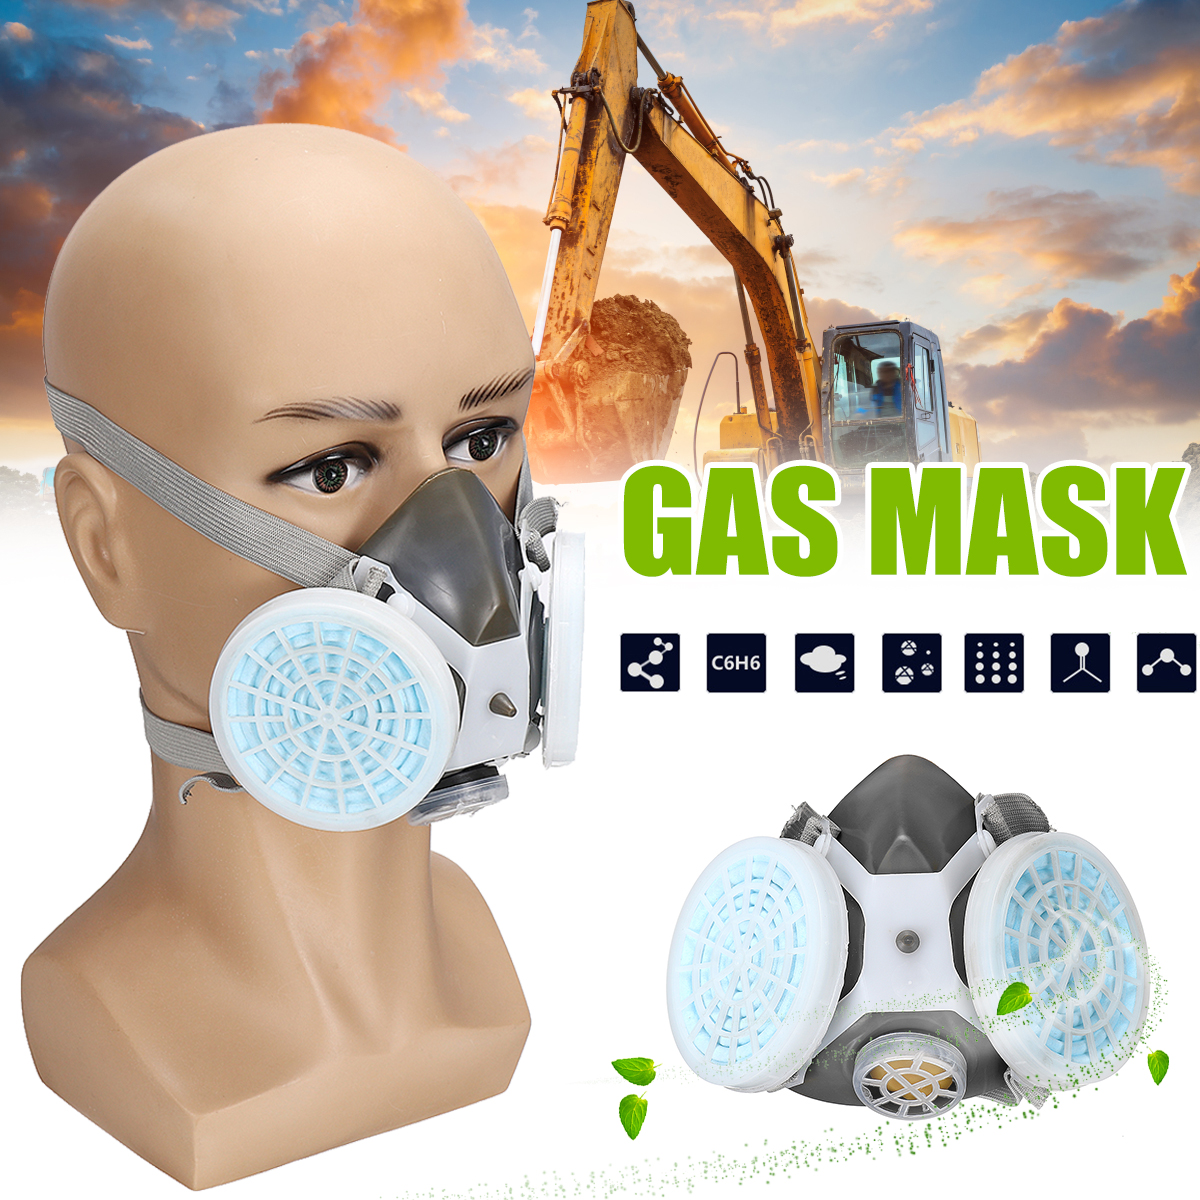 Safety Respiratory Anti-Dust Gas Mask Half Face Paint Spraying Industrial Filter Outdoor Anti-fog PM2.5 Mask Respirator safety respiratory gas mask half face filter anti dust smoke protective mask for painting spraying industrial pesticide chemical